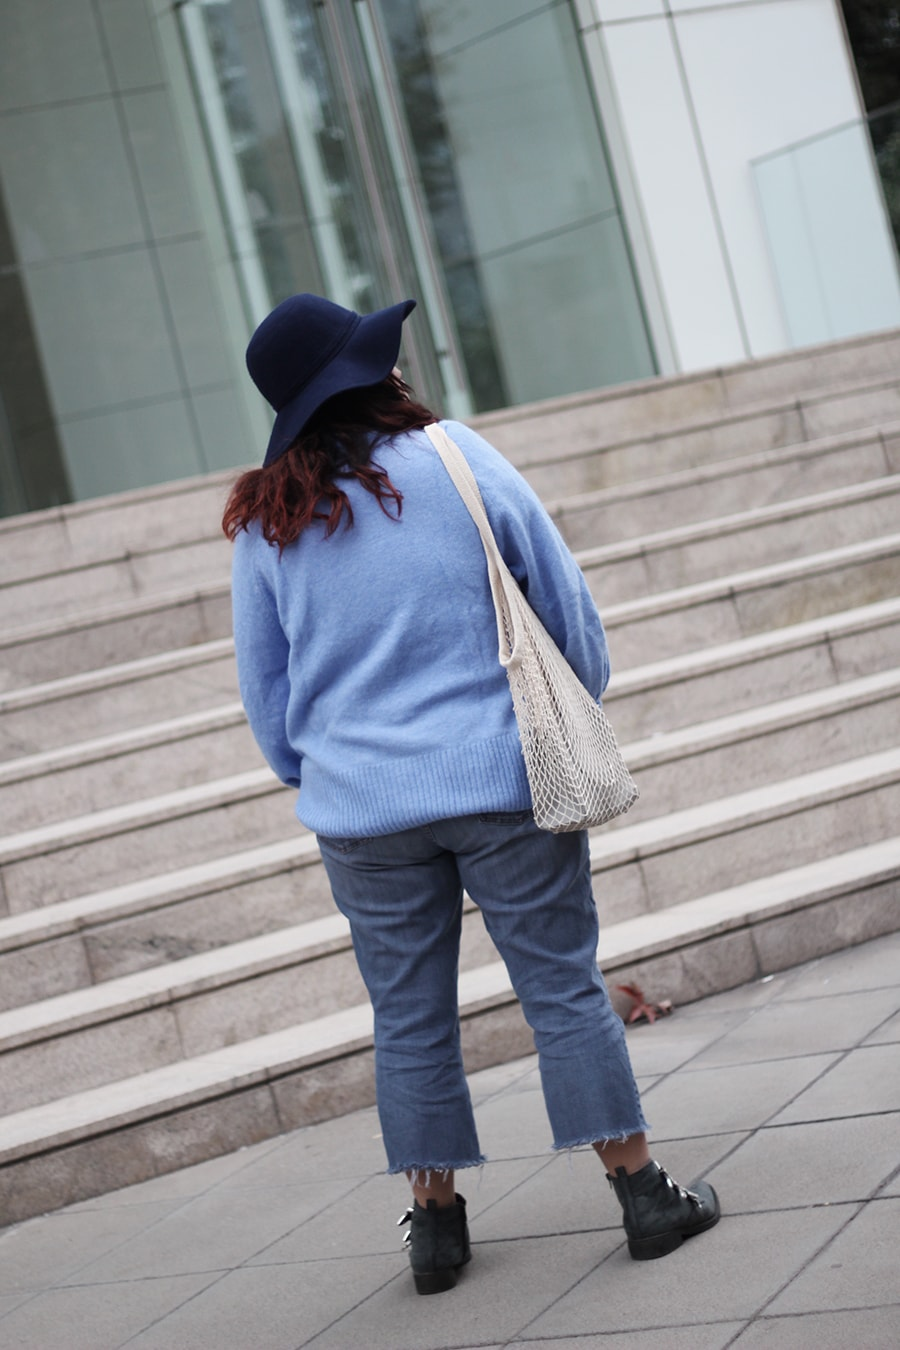 Blue turtle neck sweater - net bag trend - cowboy boots - plus size winter outfit